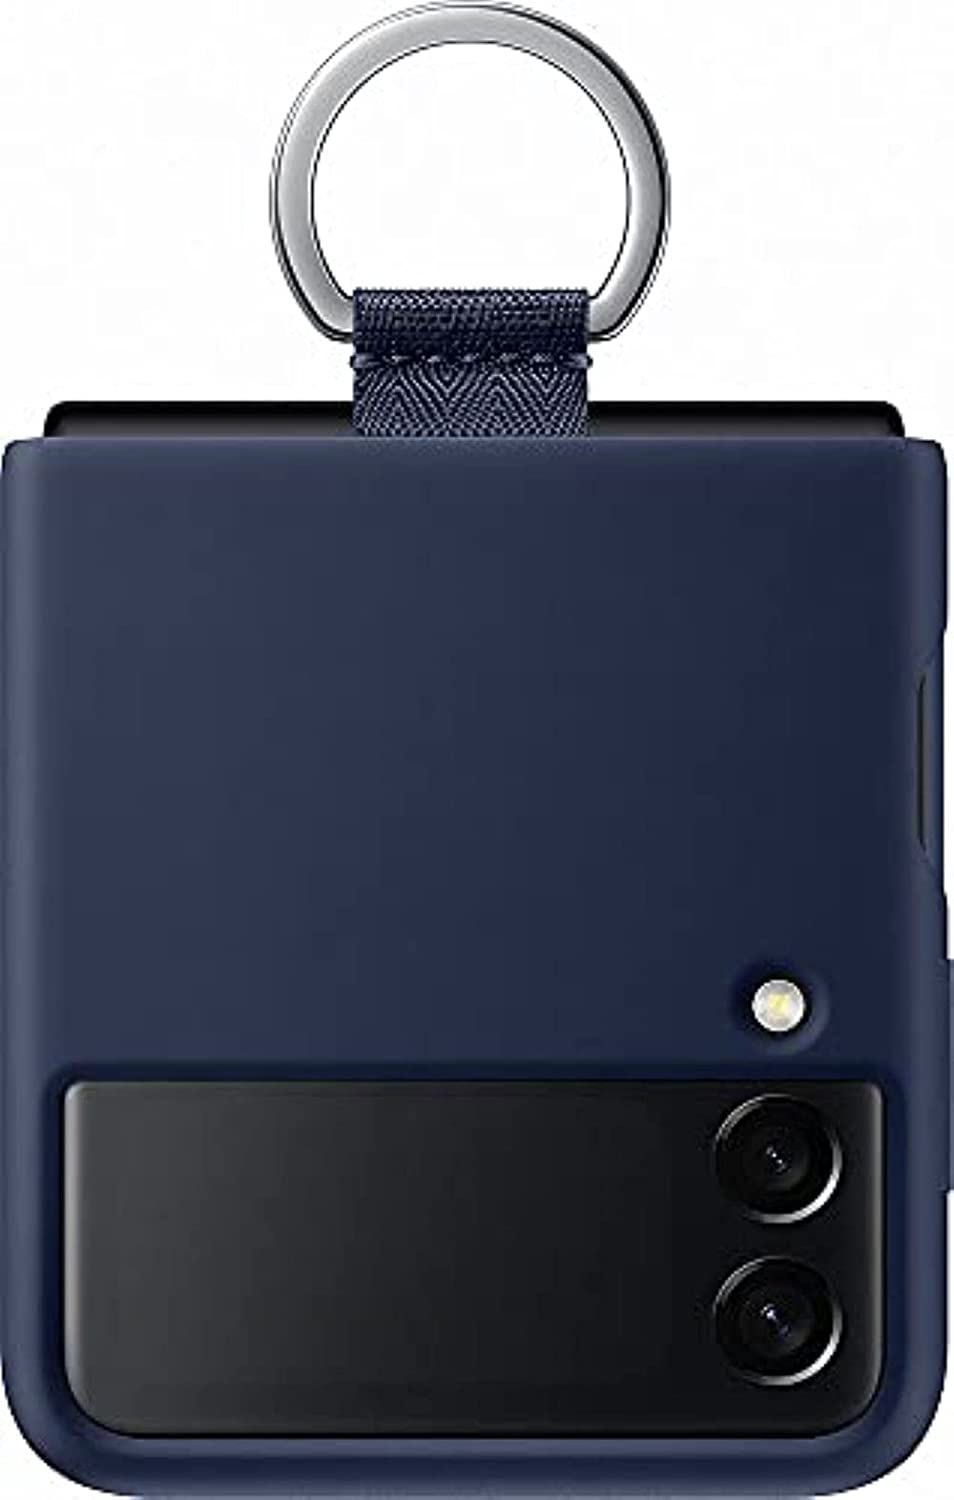 Samsung Galaxy Z Flip 3 Phone Case, Silicone Protective Cover with Strap, Heavy Duty, Shockproof Smartphone Protector, (Navy)